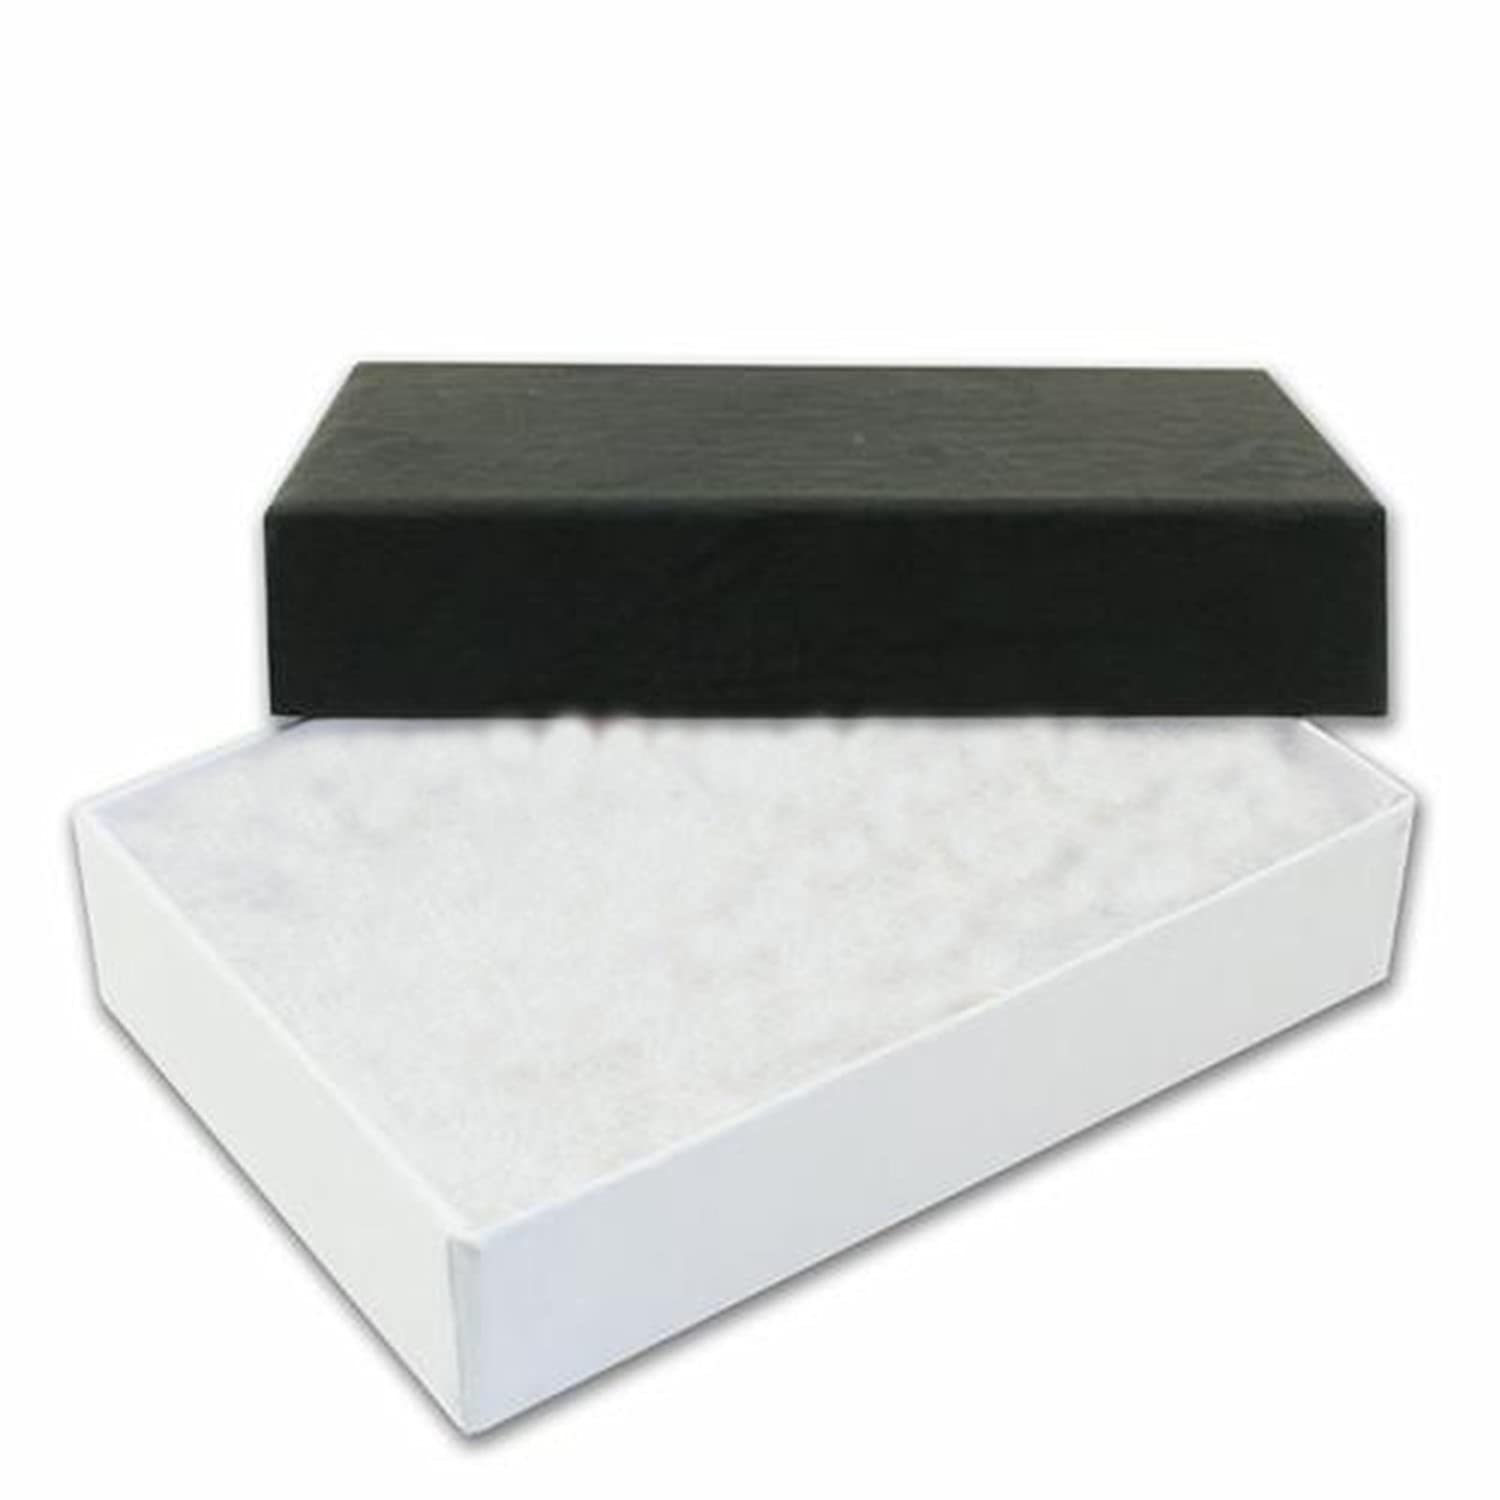 Silvadore Jewellery Handmade Cardboard Gift Boxes Cotton Filling All Sizes Black White Value Range 5 Pack Oblong Small 6cm X 4 2cm X